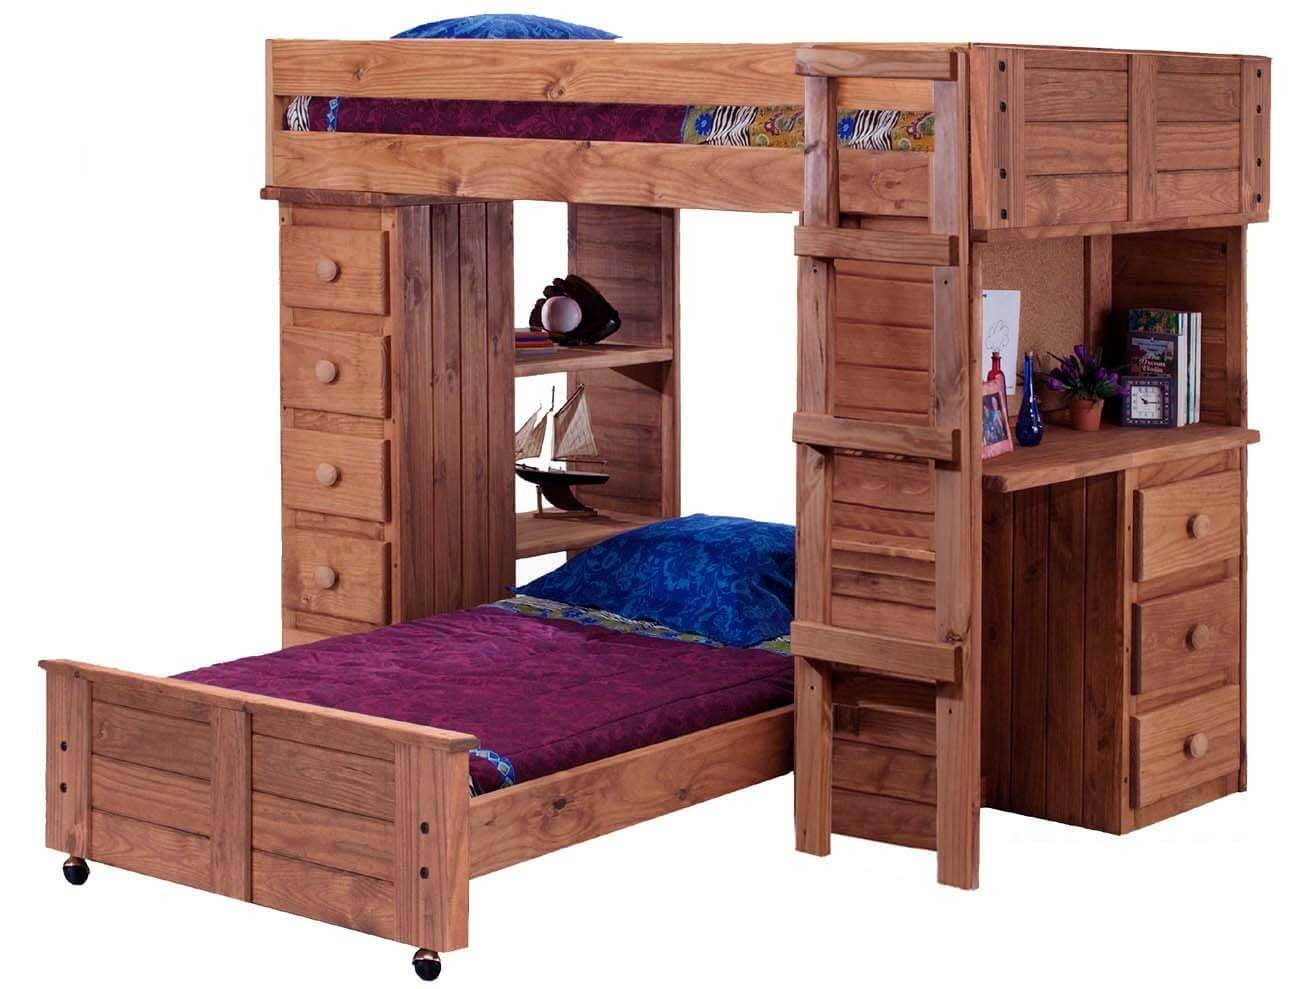 The arrangement and features of this unit is very similar to others - desk, twin-over-twin, drawers, open shelving and lower bed on wheels. The ladder in this model is straight-up-and-down instead of leaning.